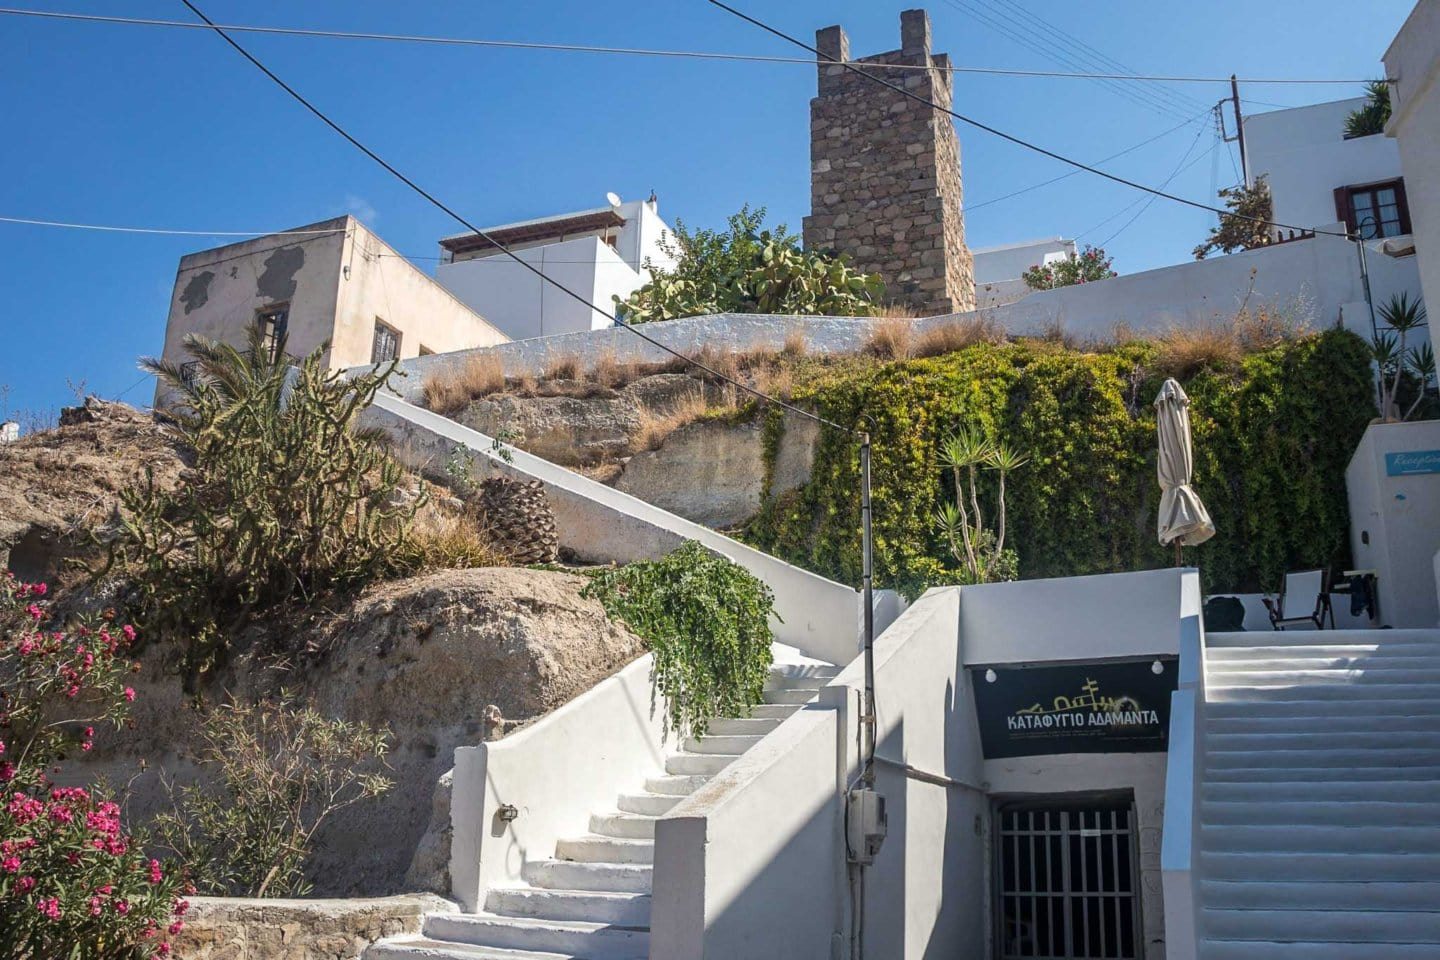 houses built on a hill on top of a world war II bomb shelter in Adamas